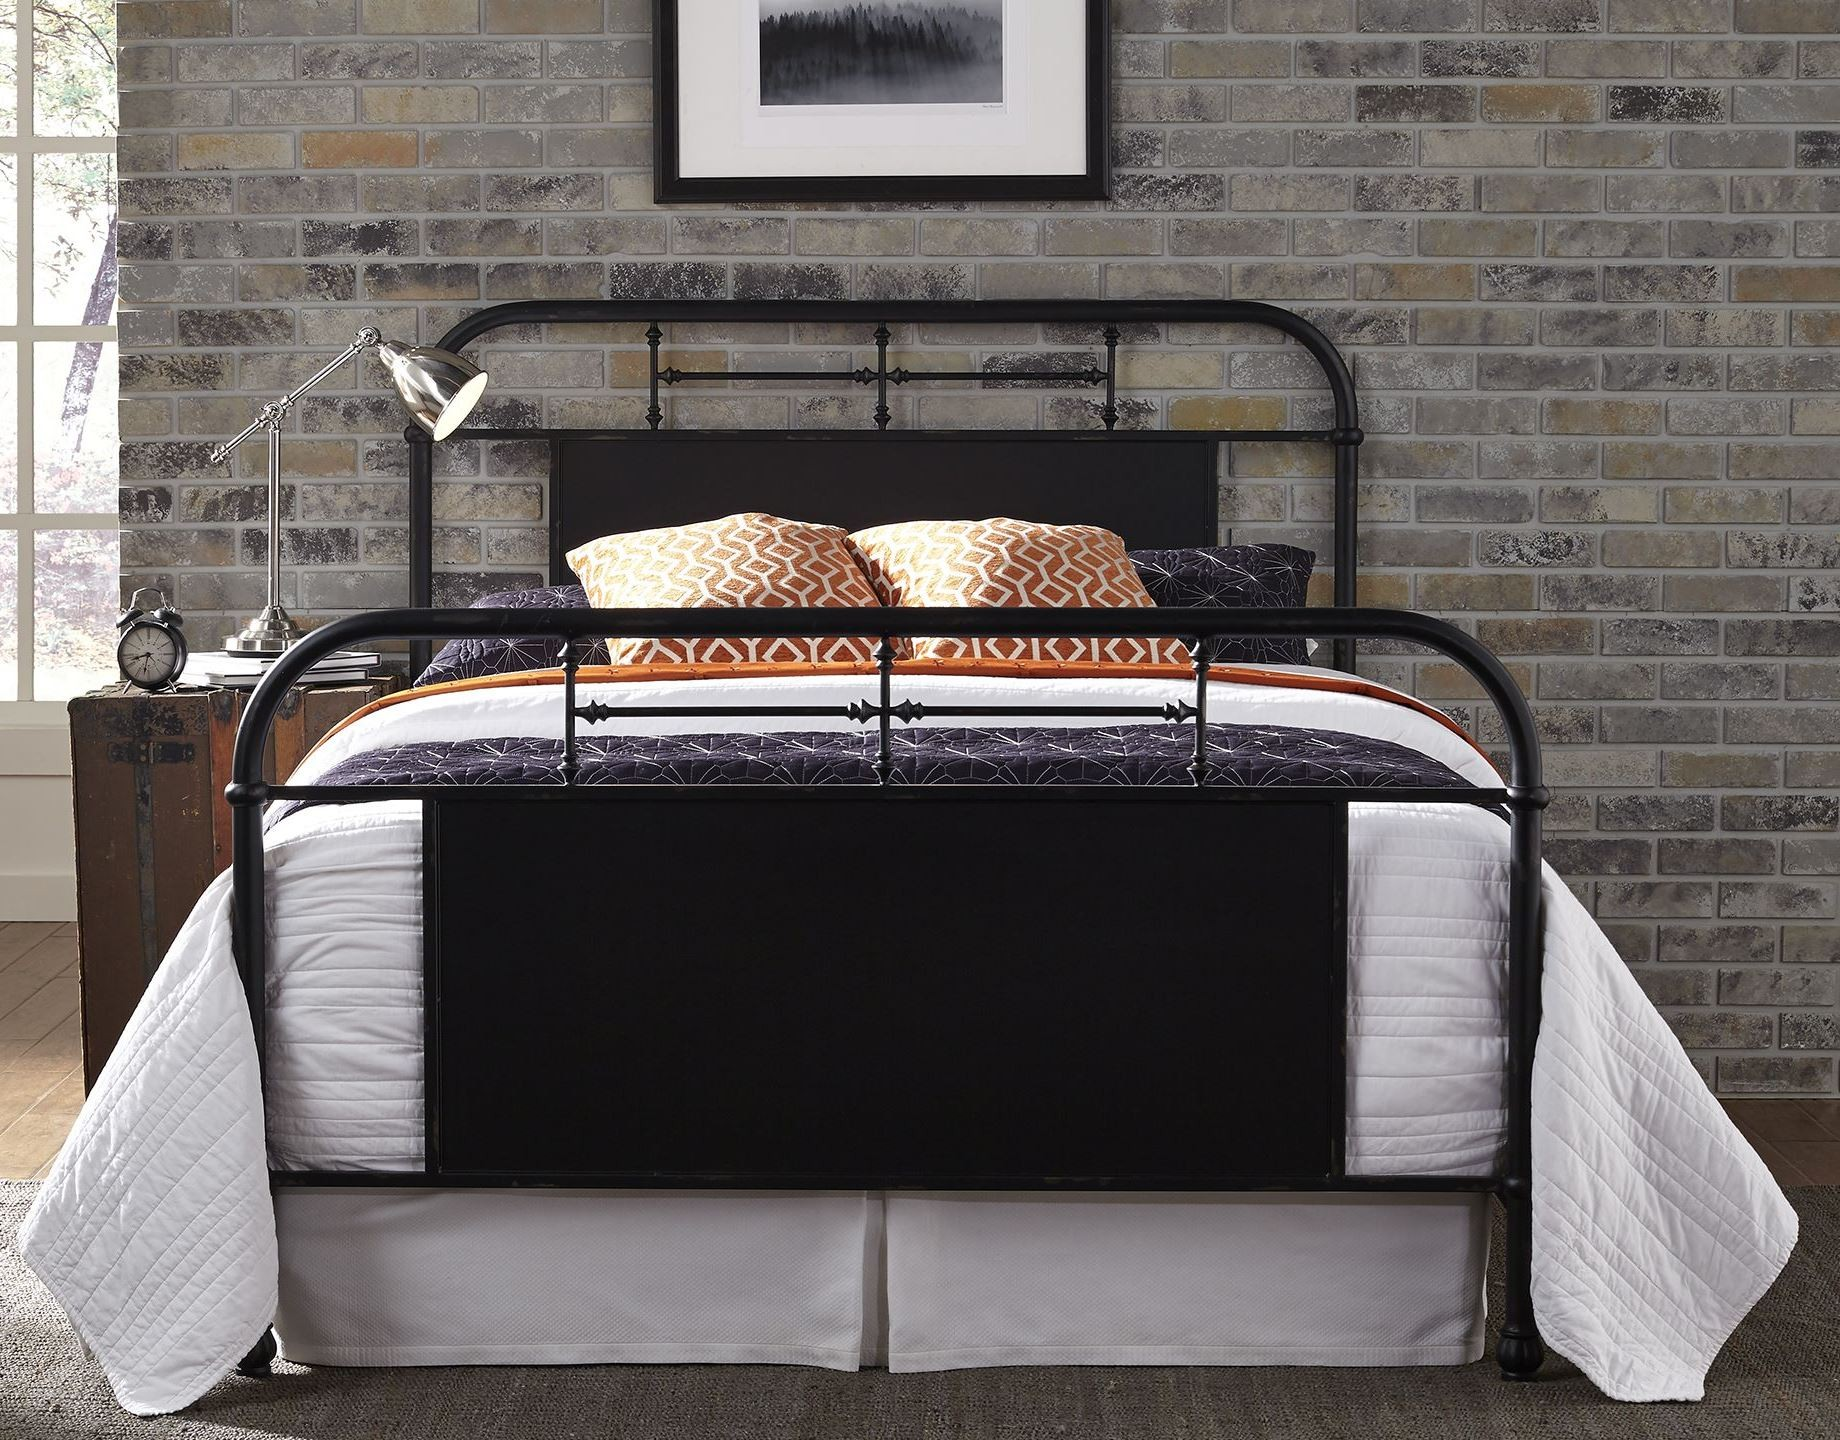 Vintage Distressed Black Queen Metal Bed From Liberty (179